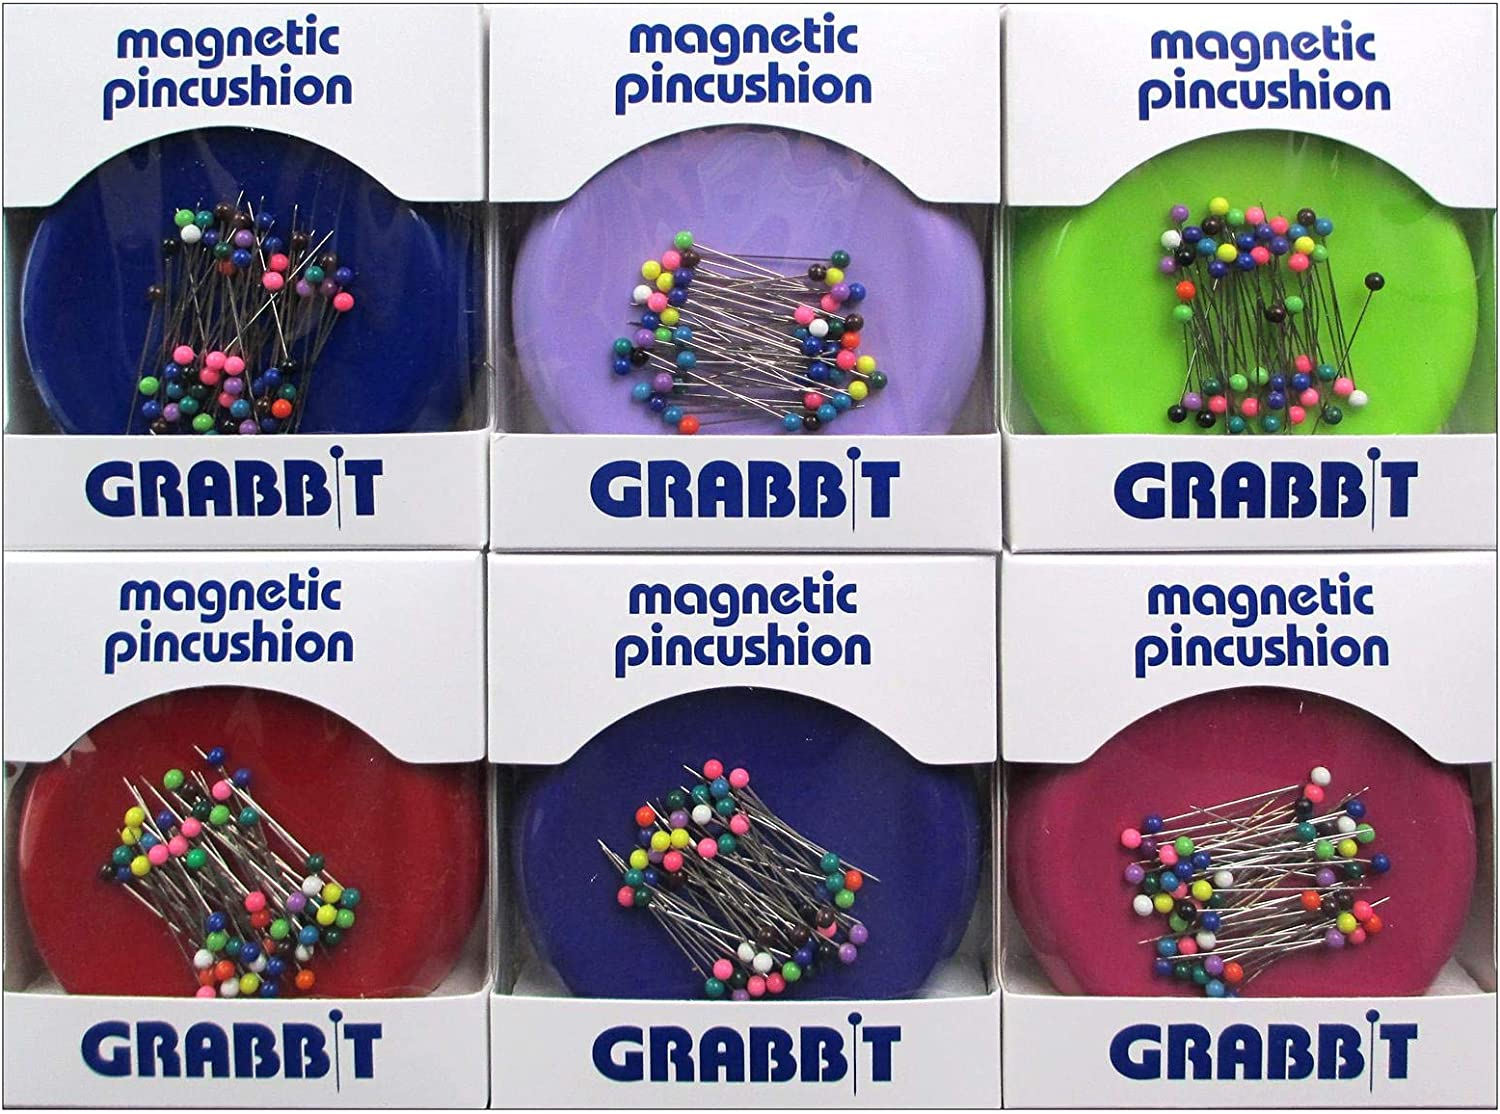 Grabbit Magnetic Sewing Pincushion with 50 Plastic Head Pins - Assorted Colors